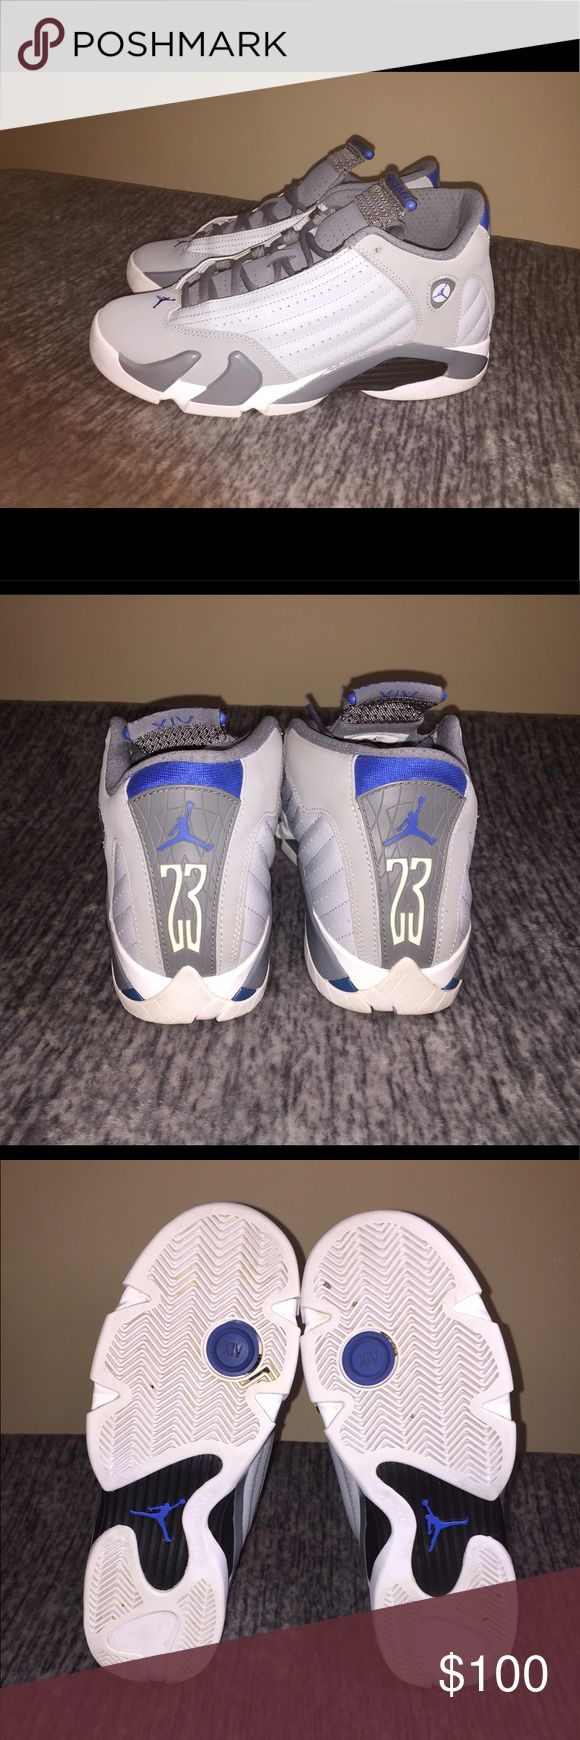 "Air Jordan Retro 14 ""Sport Blue"" Great Condition; Size: Boys 7; Color: Wolf Grey/White; Accepting Offers; NO TRADES! Air Jordan Shoes Sneakers"